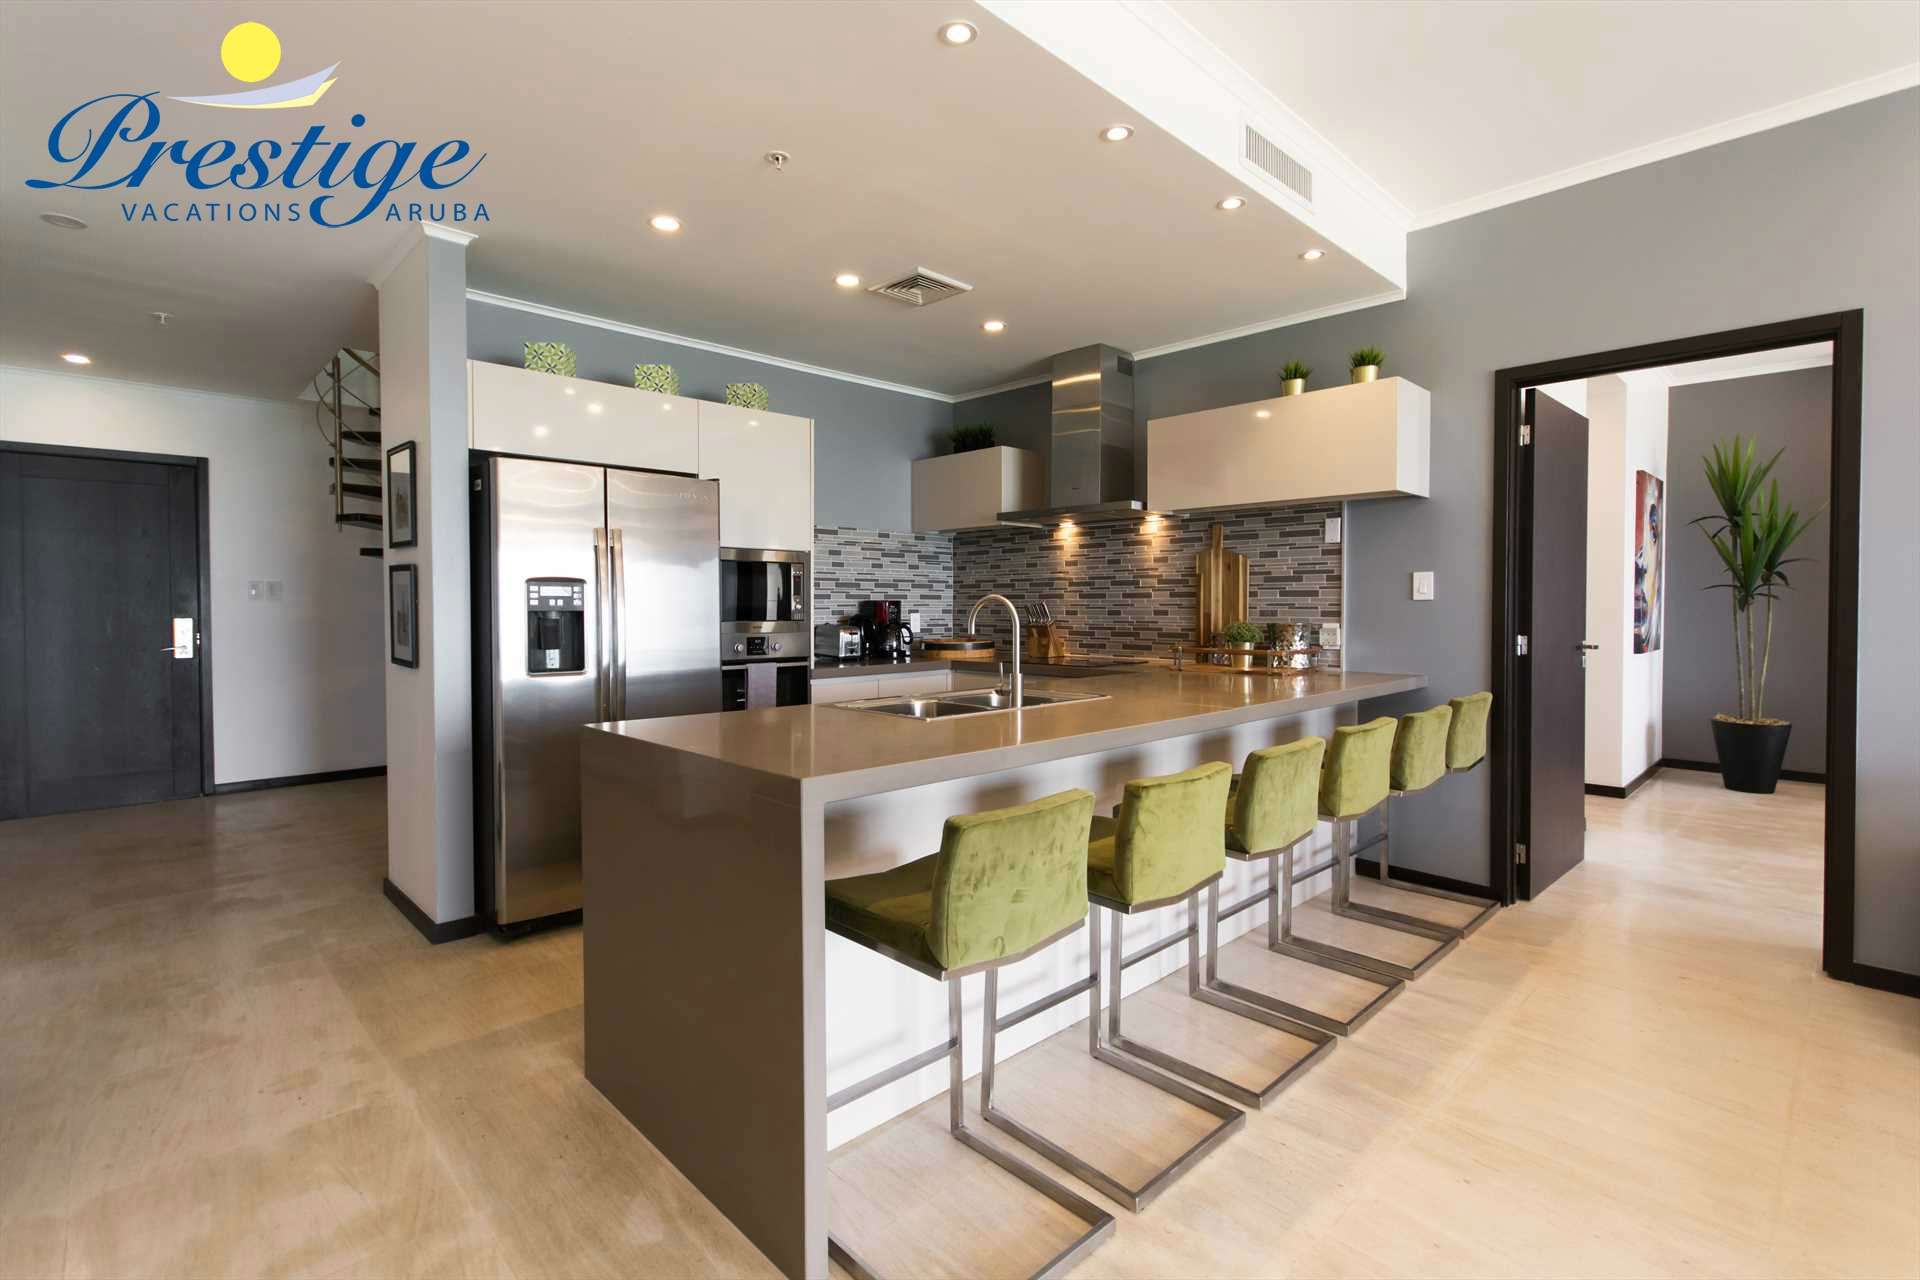 Fully equipped modern kitchen with 6-barstools